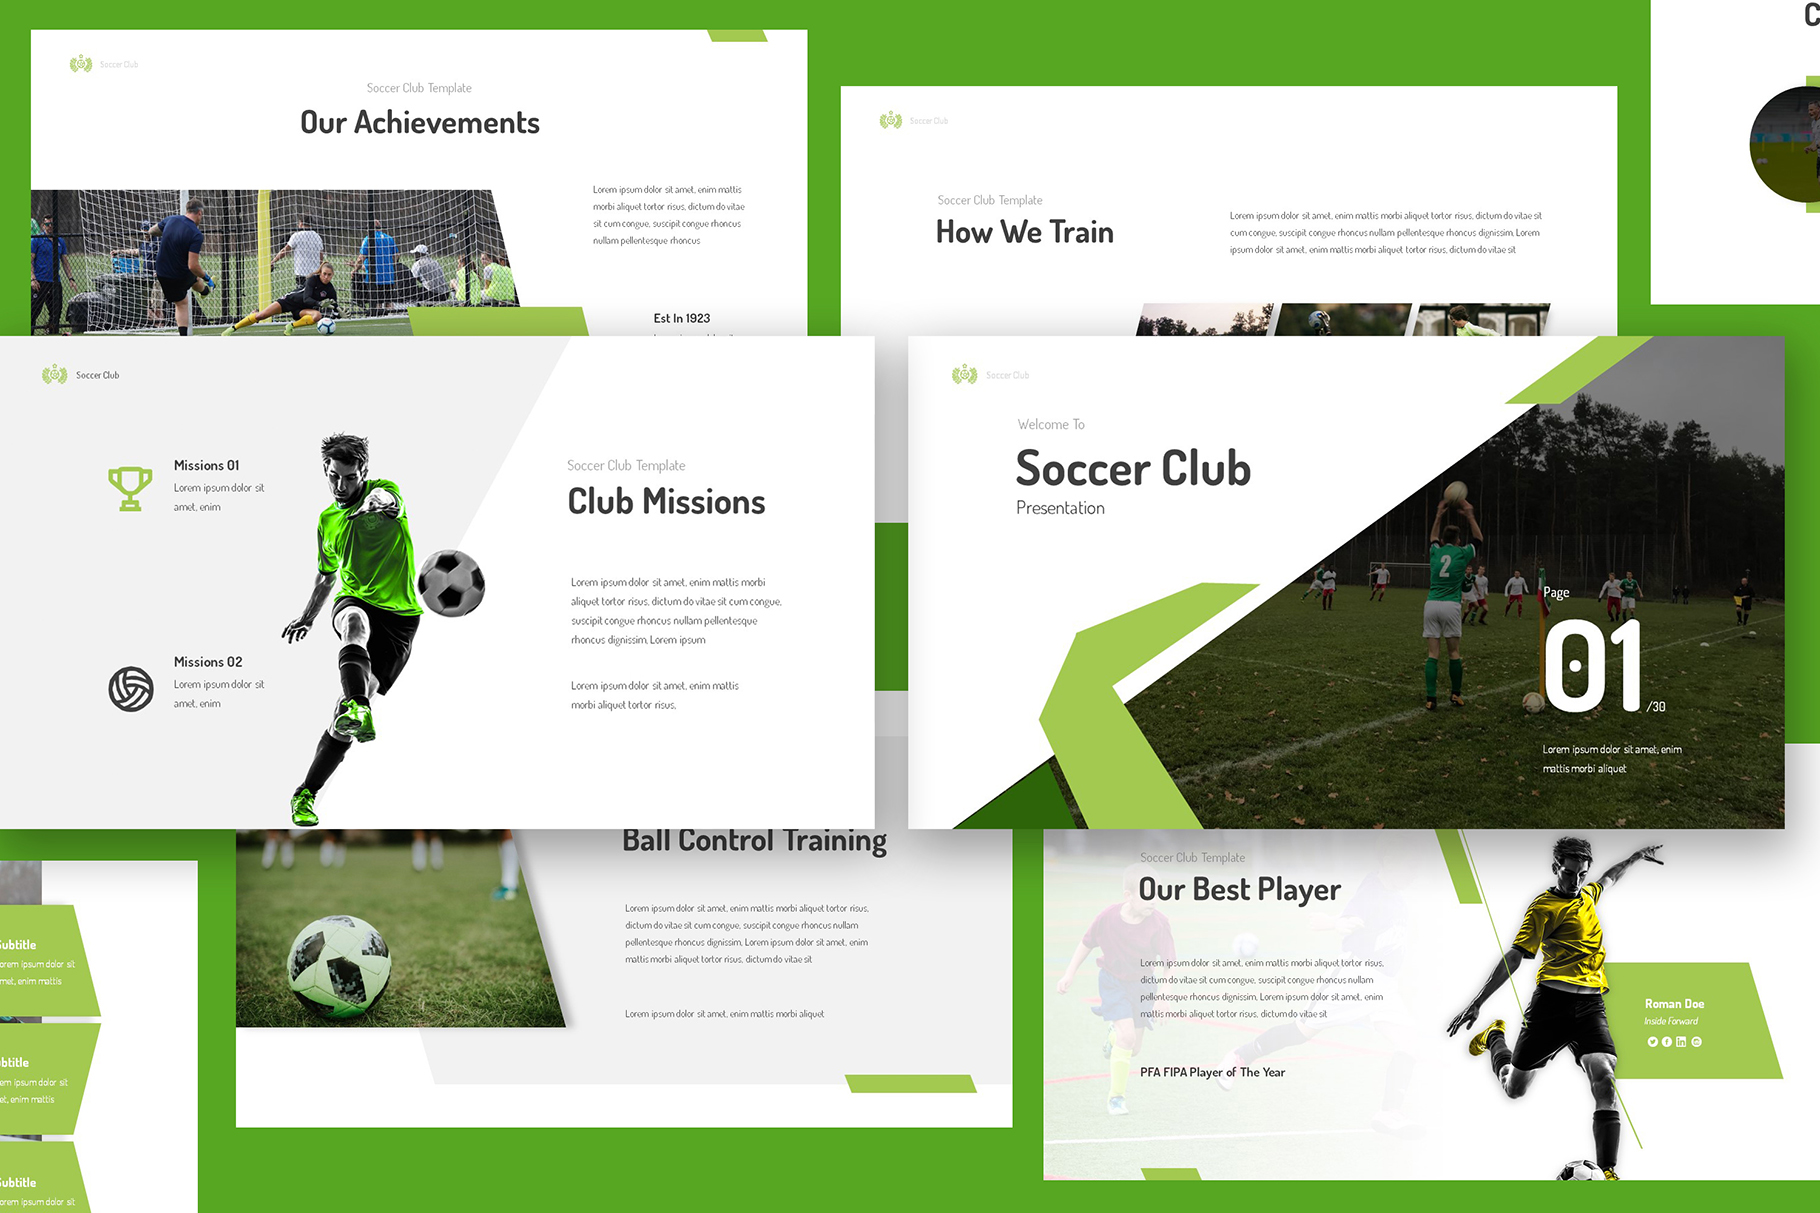 Soccer Club Powerpoint Presentation example image 2